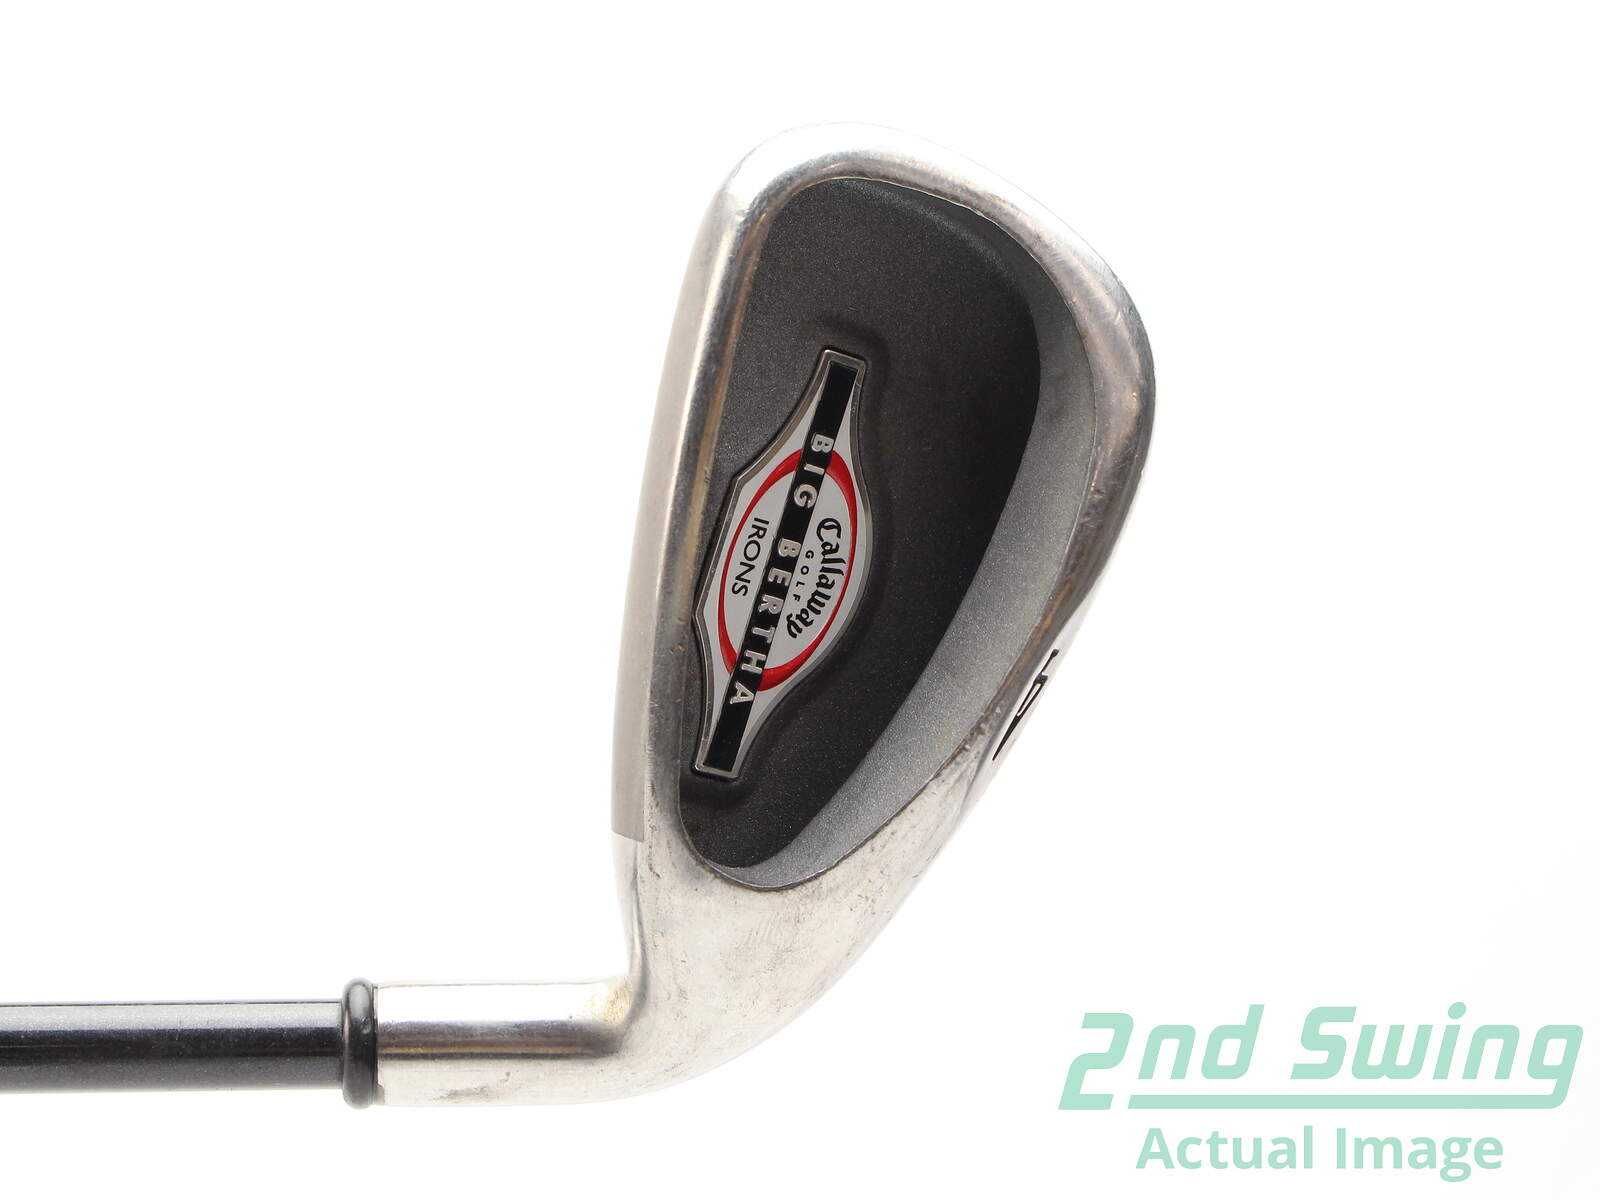 bertha single men Callaway 1994 big bertha single iron 3 iron graphite firm right 3975 in callaway 1994  callaway 1994 big bertha single iron 8 iron rch 96 graphite regular right 3625.